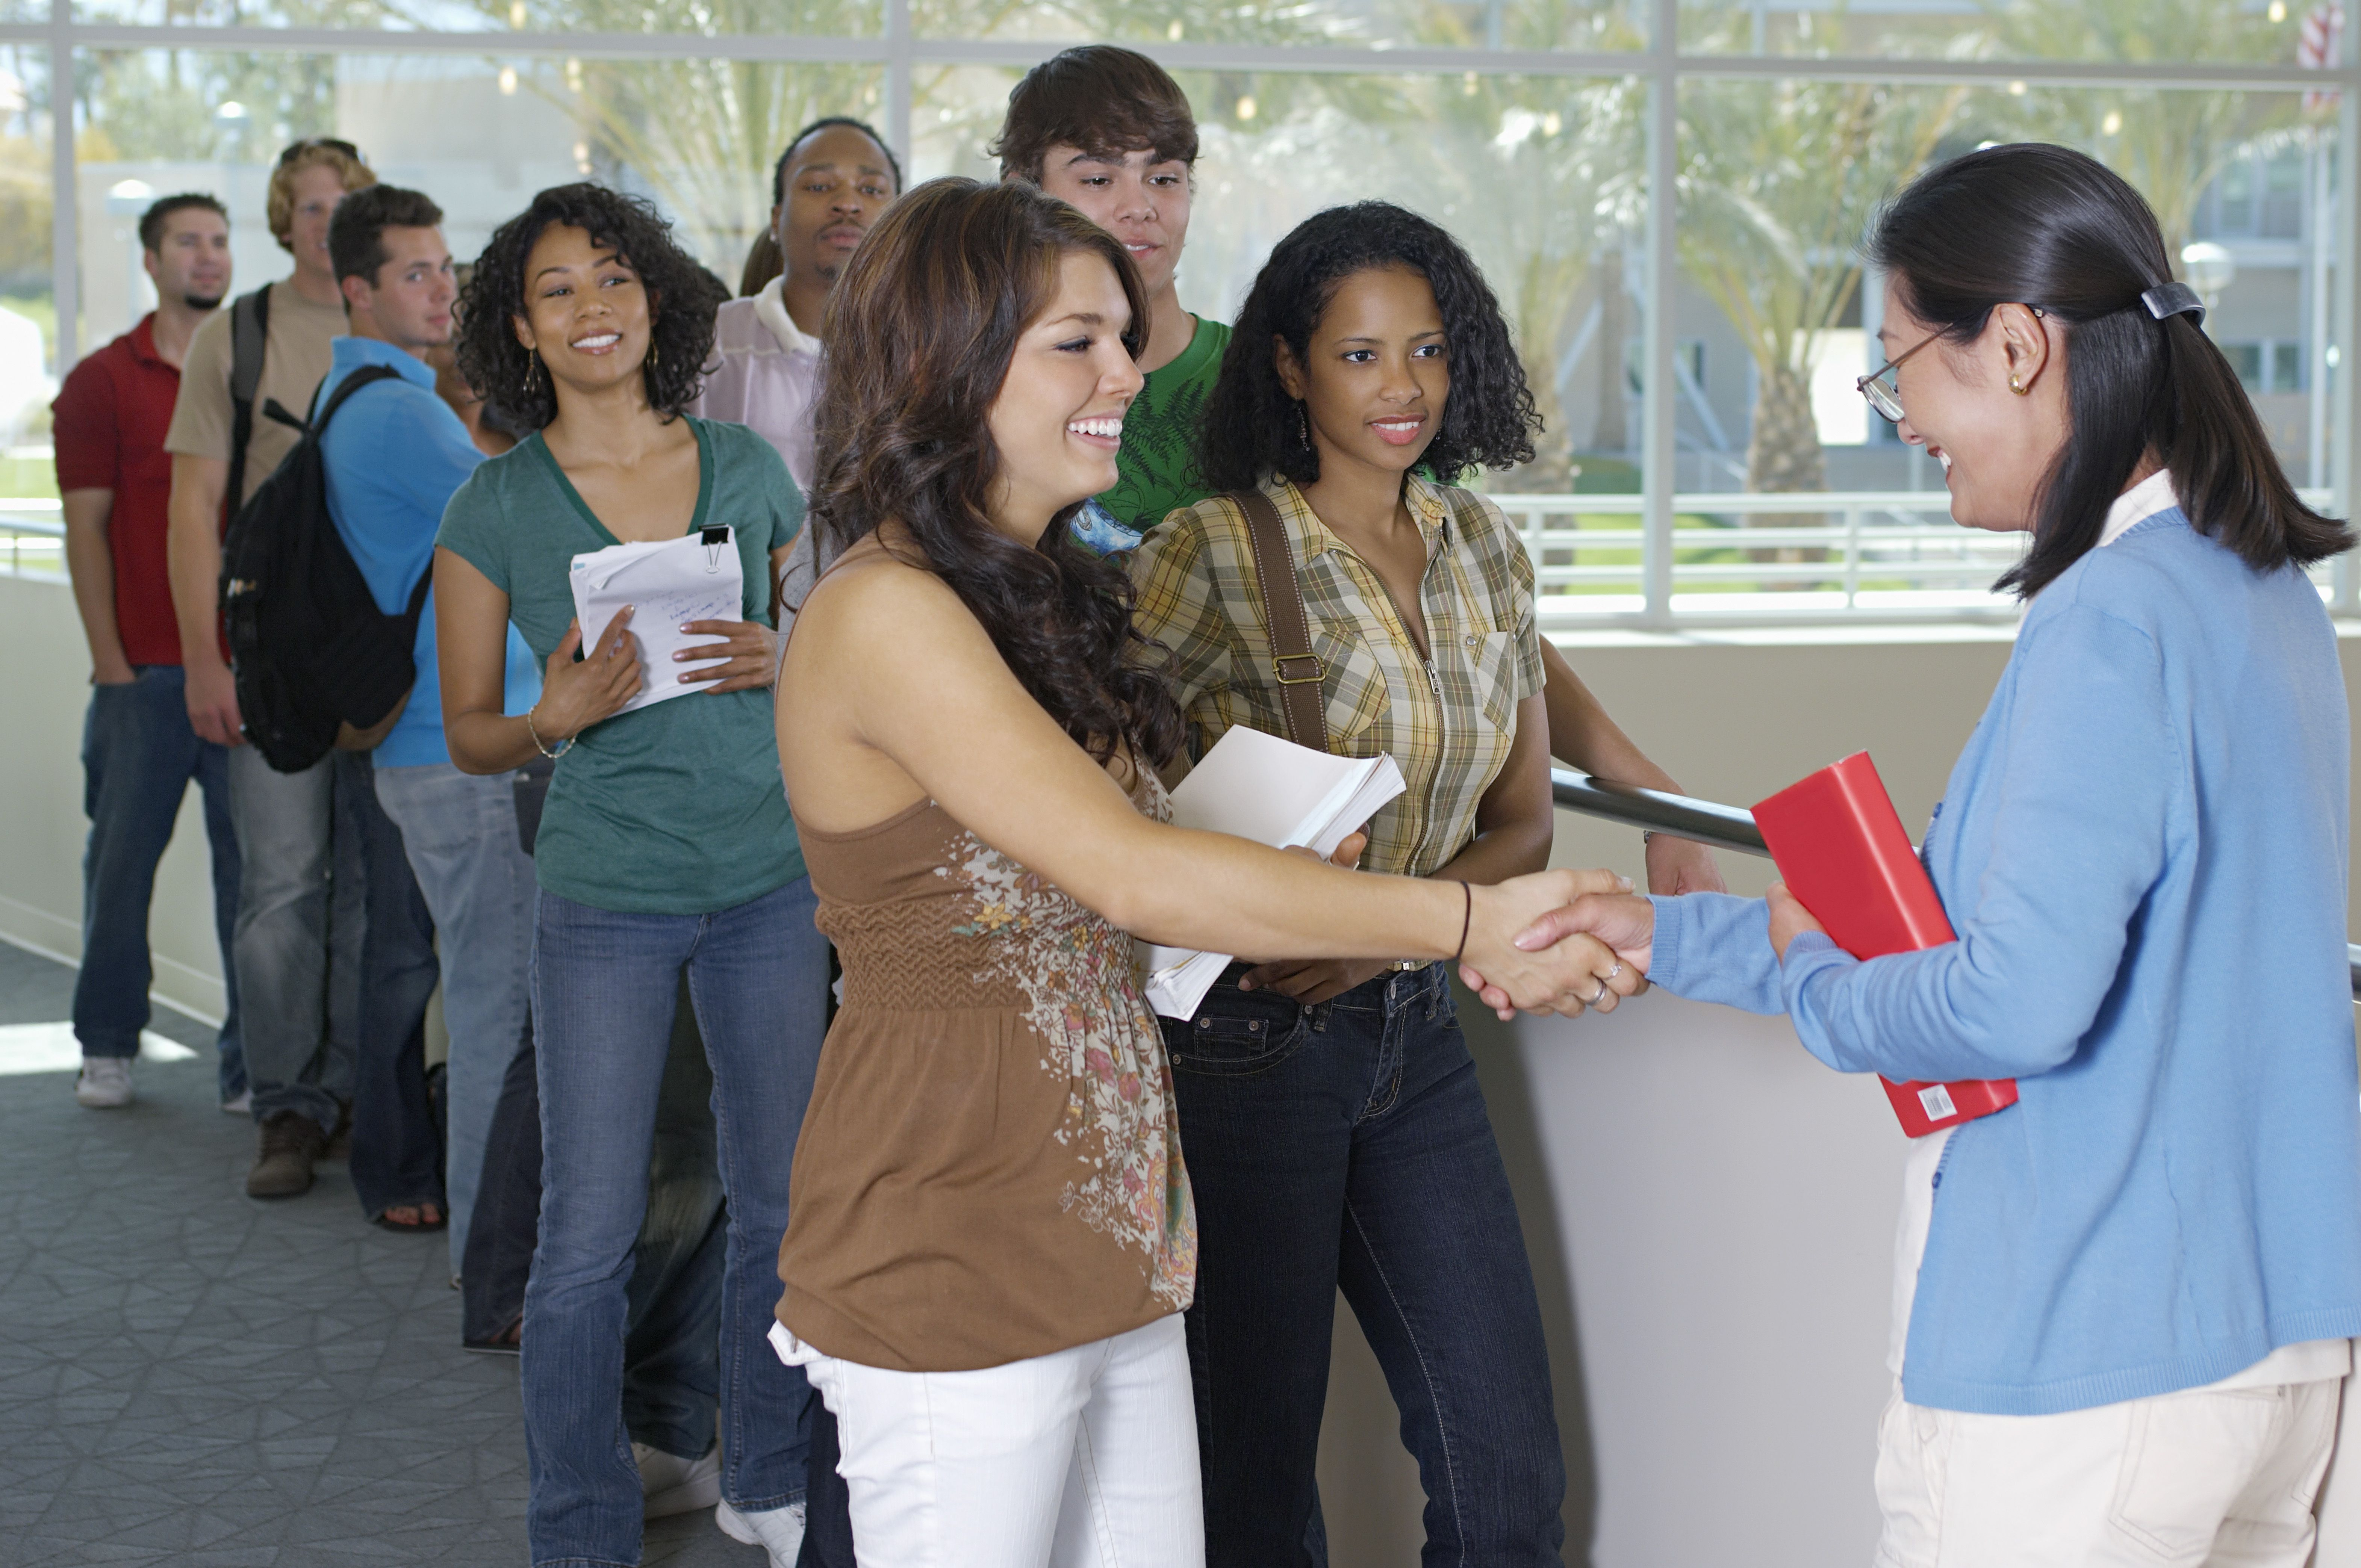 Success At First Sight First Impressions Crucial For Job